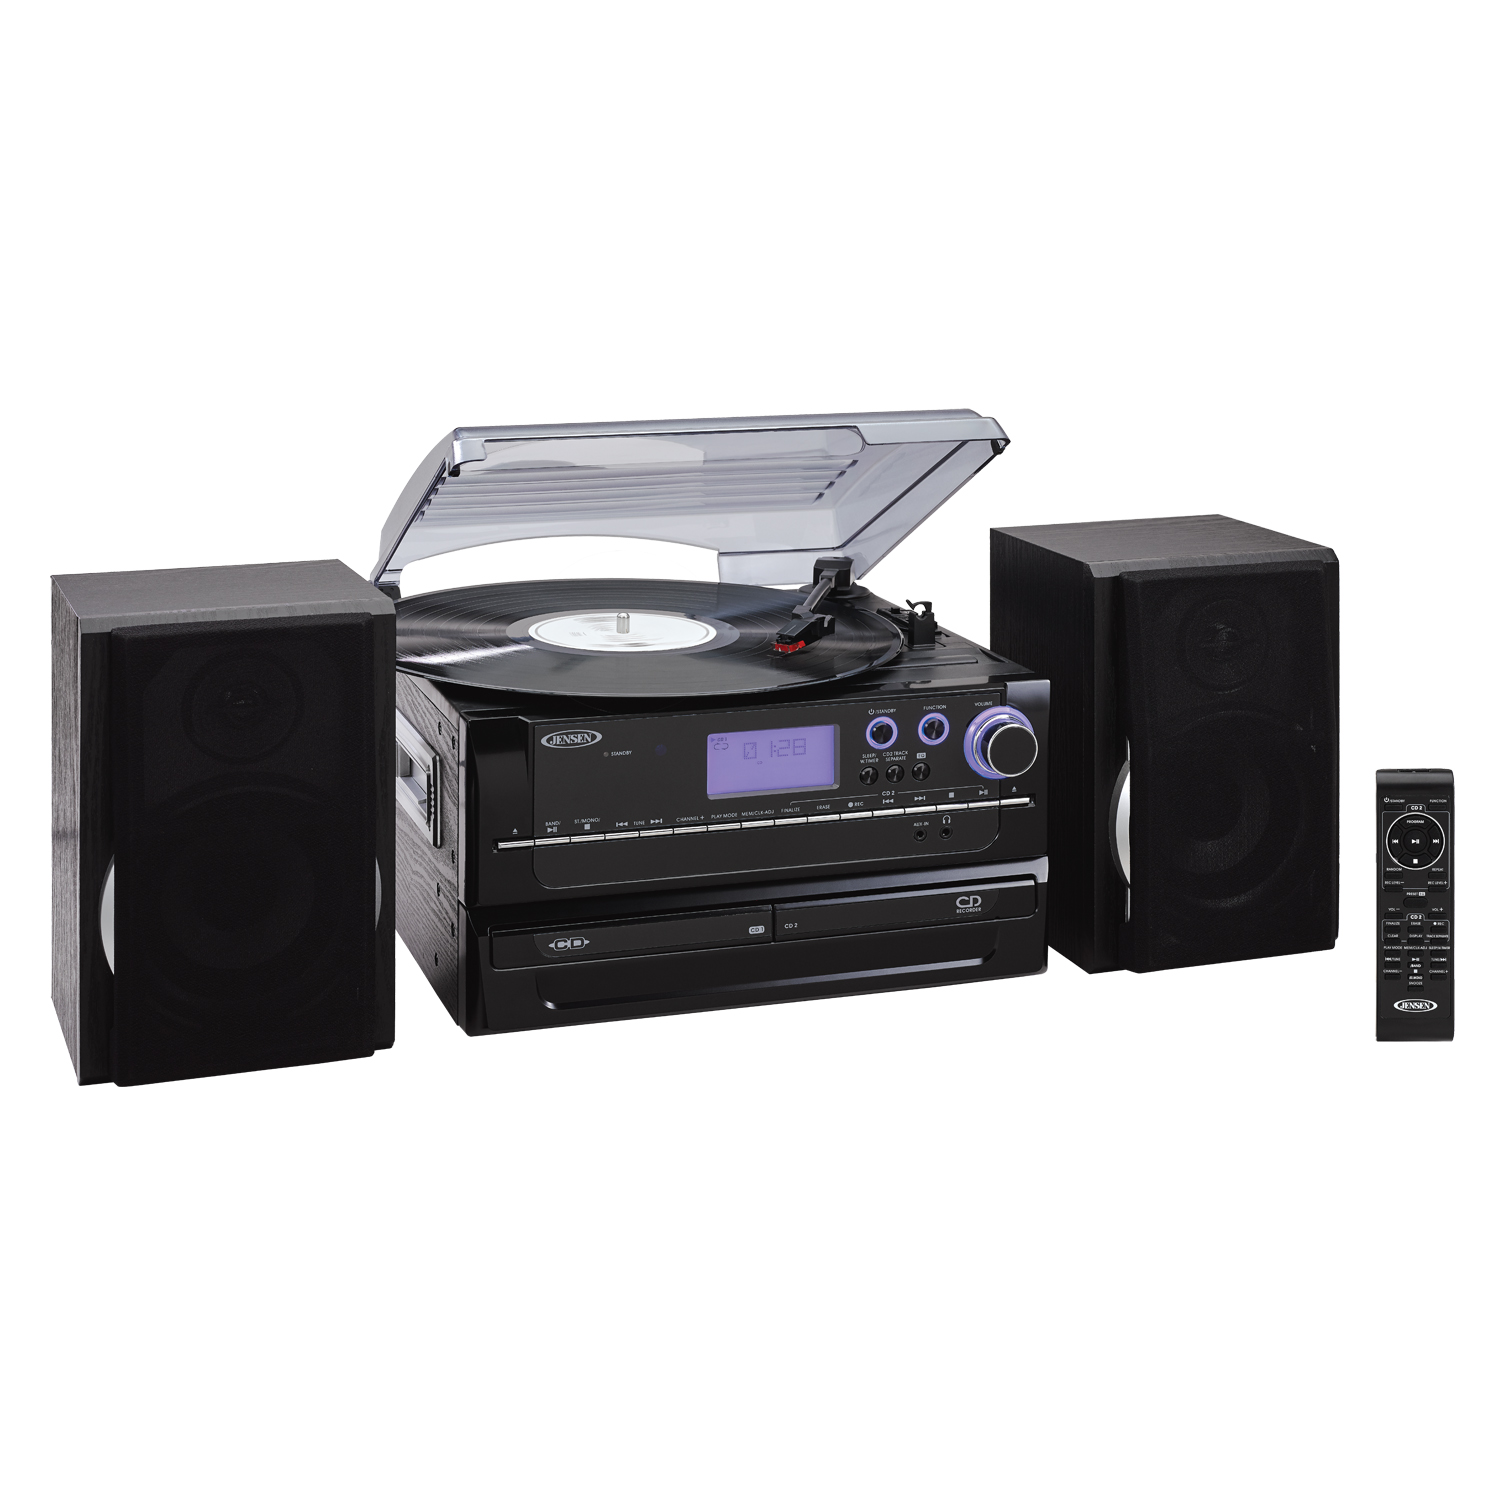 Jensen JTA-980 3-Speed Turntable 2-CD System with Cassette and AM FM Stereo Radio by Jensen